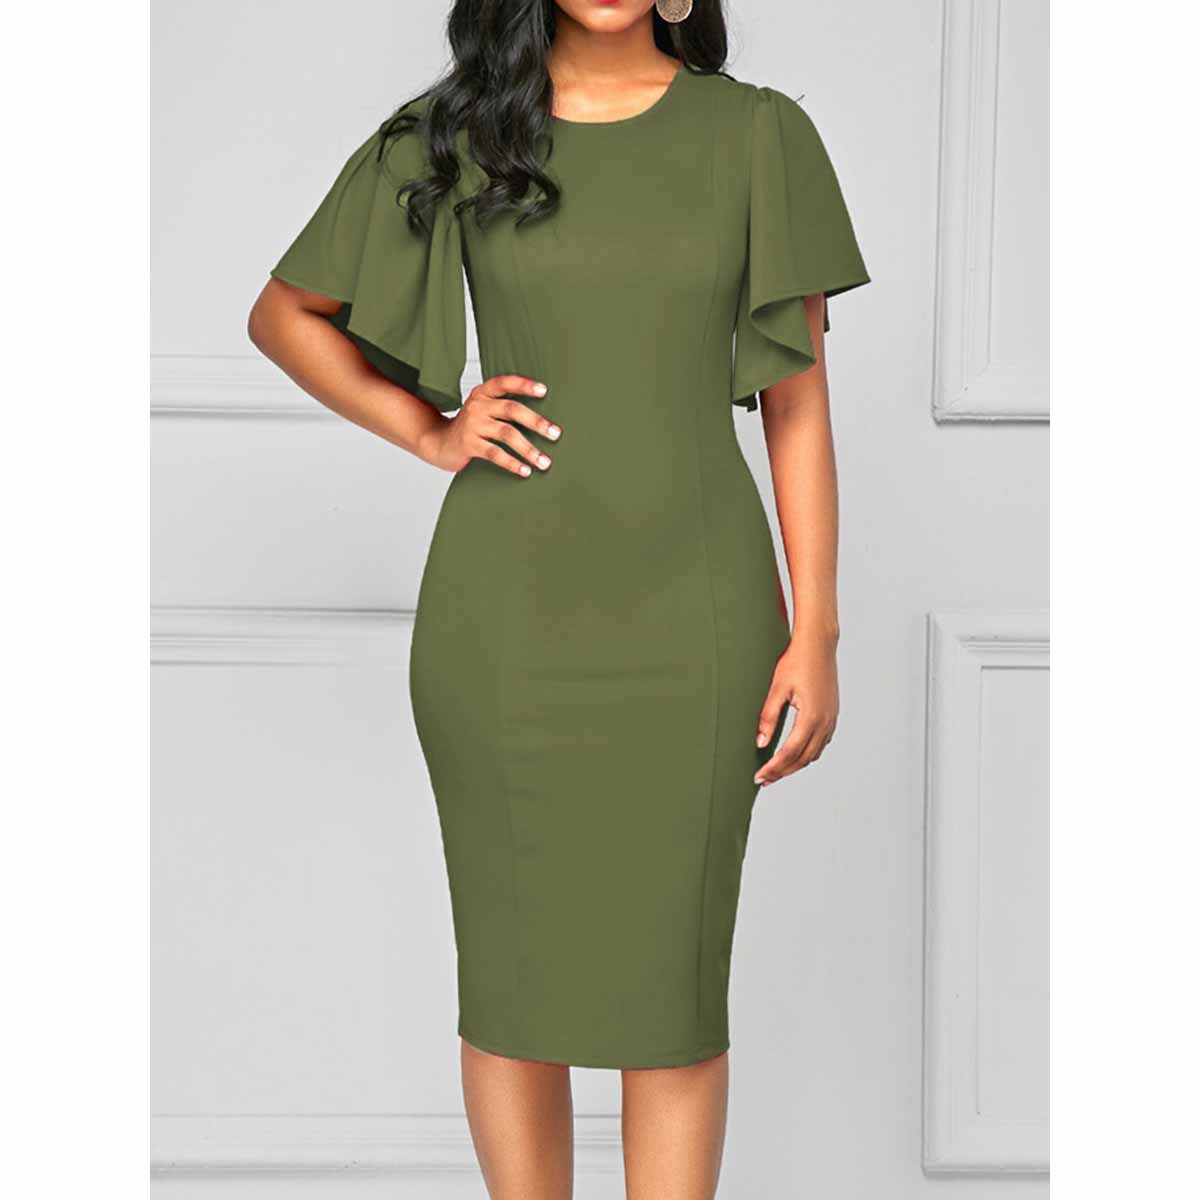 Casual Plus Size Office Pencil Woemn Dress